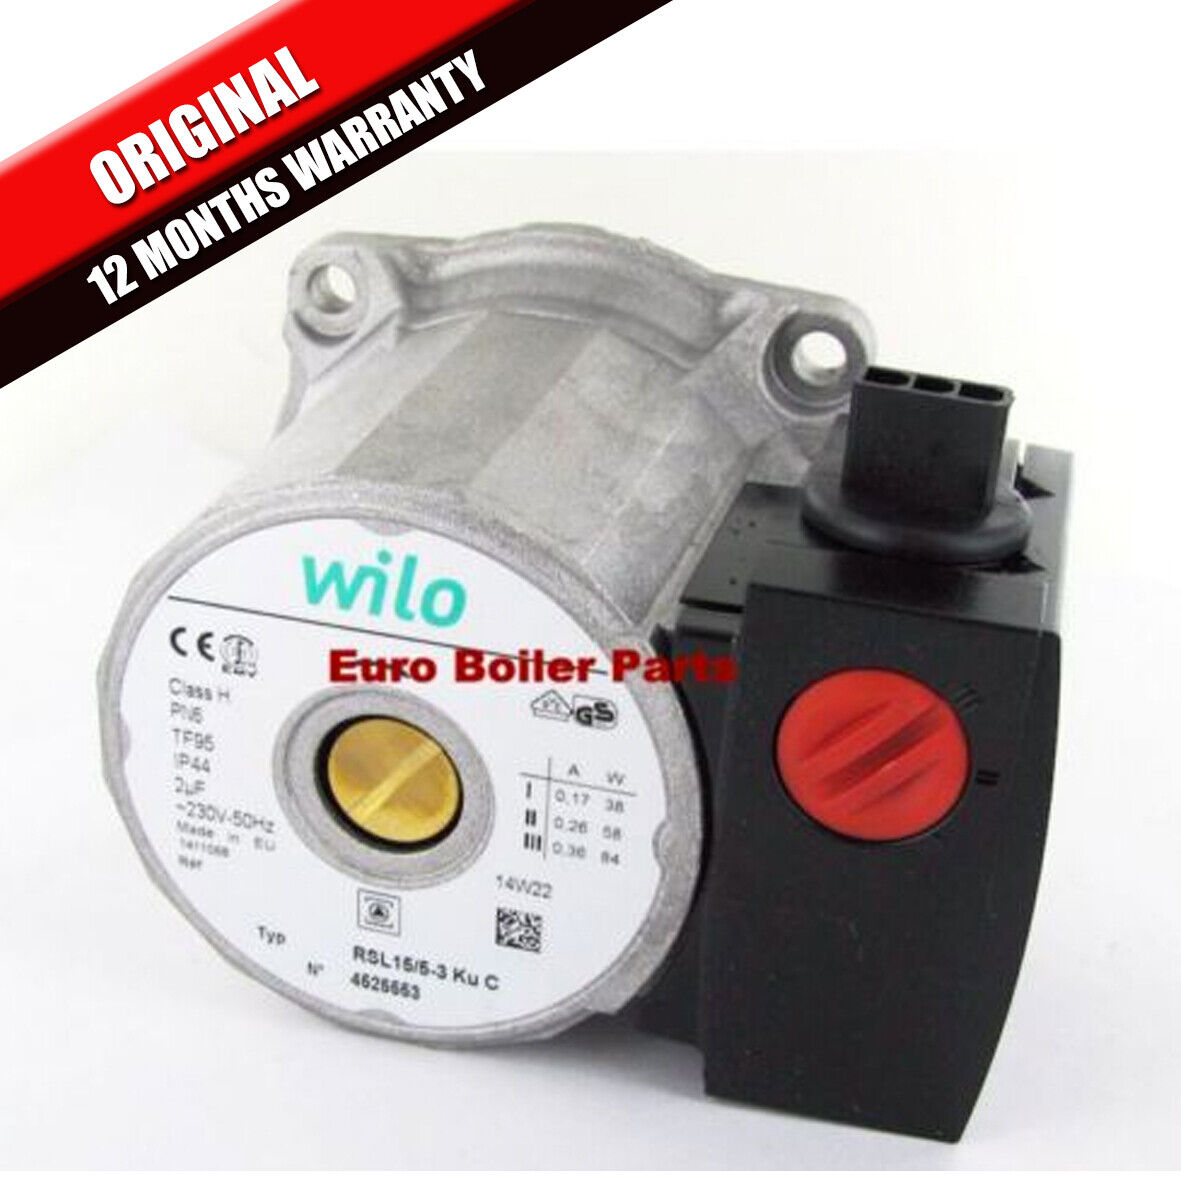 GLOWWORM ULTRACOM 24CXI 30Cxi 38Cxi Pump Head Only 0020014171 Brand ...